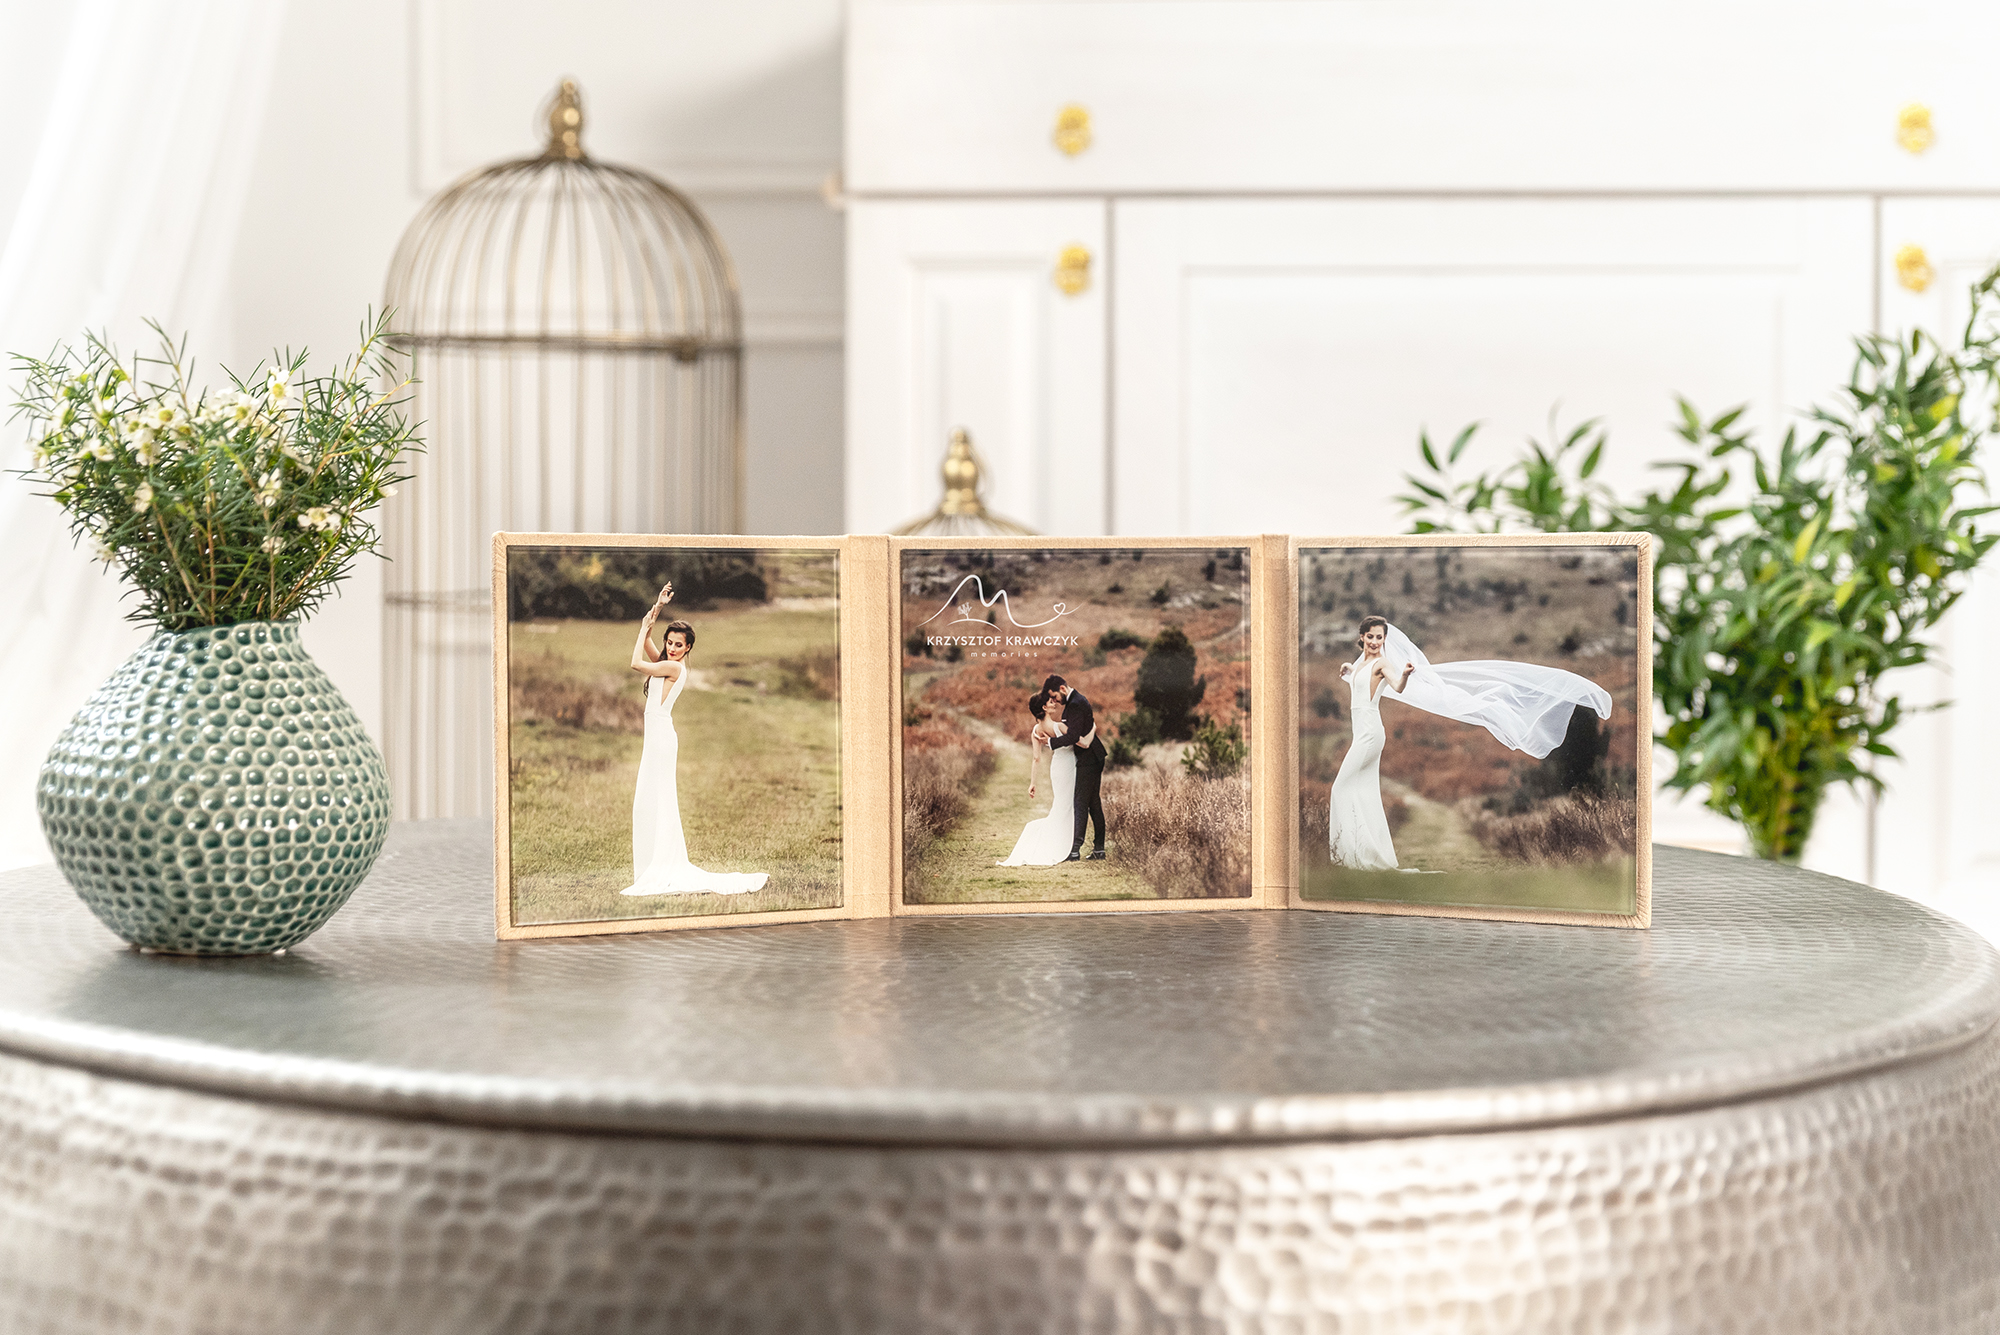 Photo Prints on Acrylic for Pro Wedding